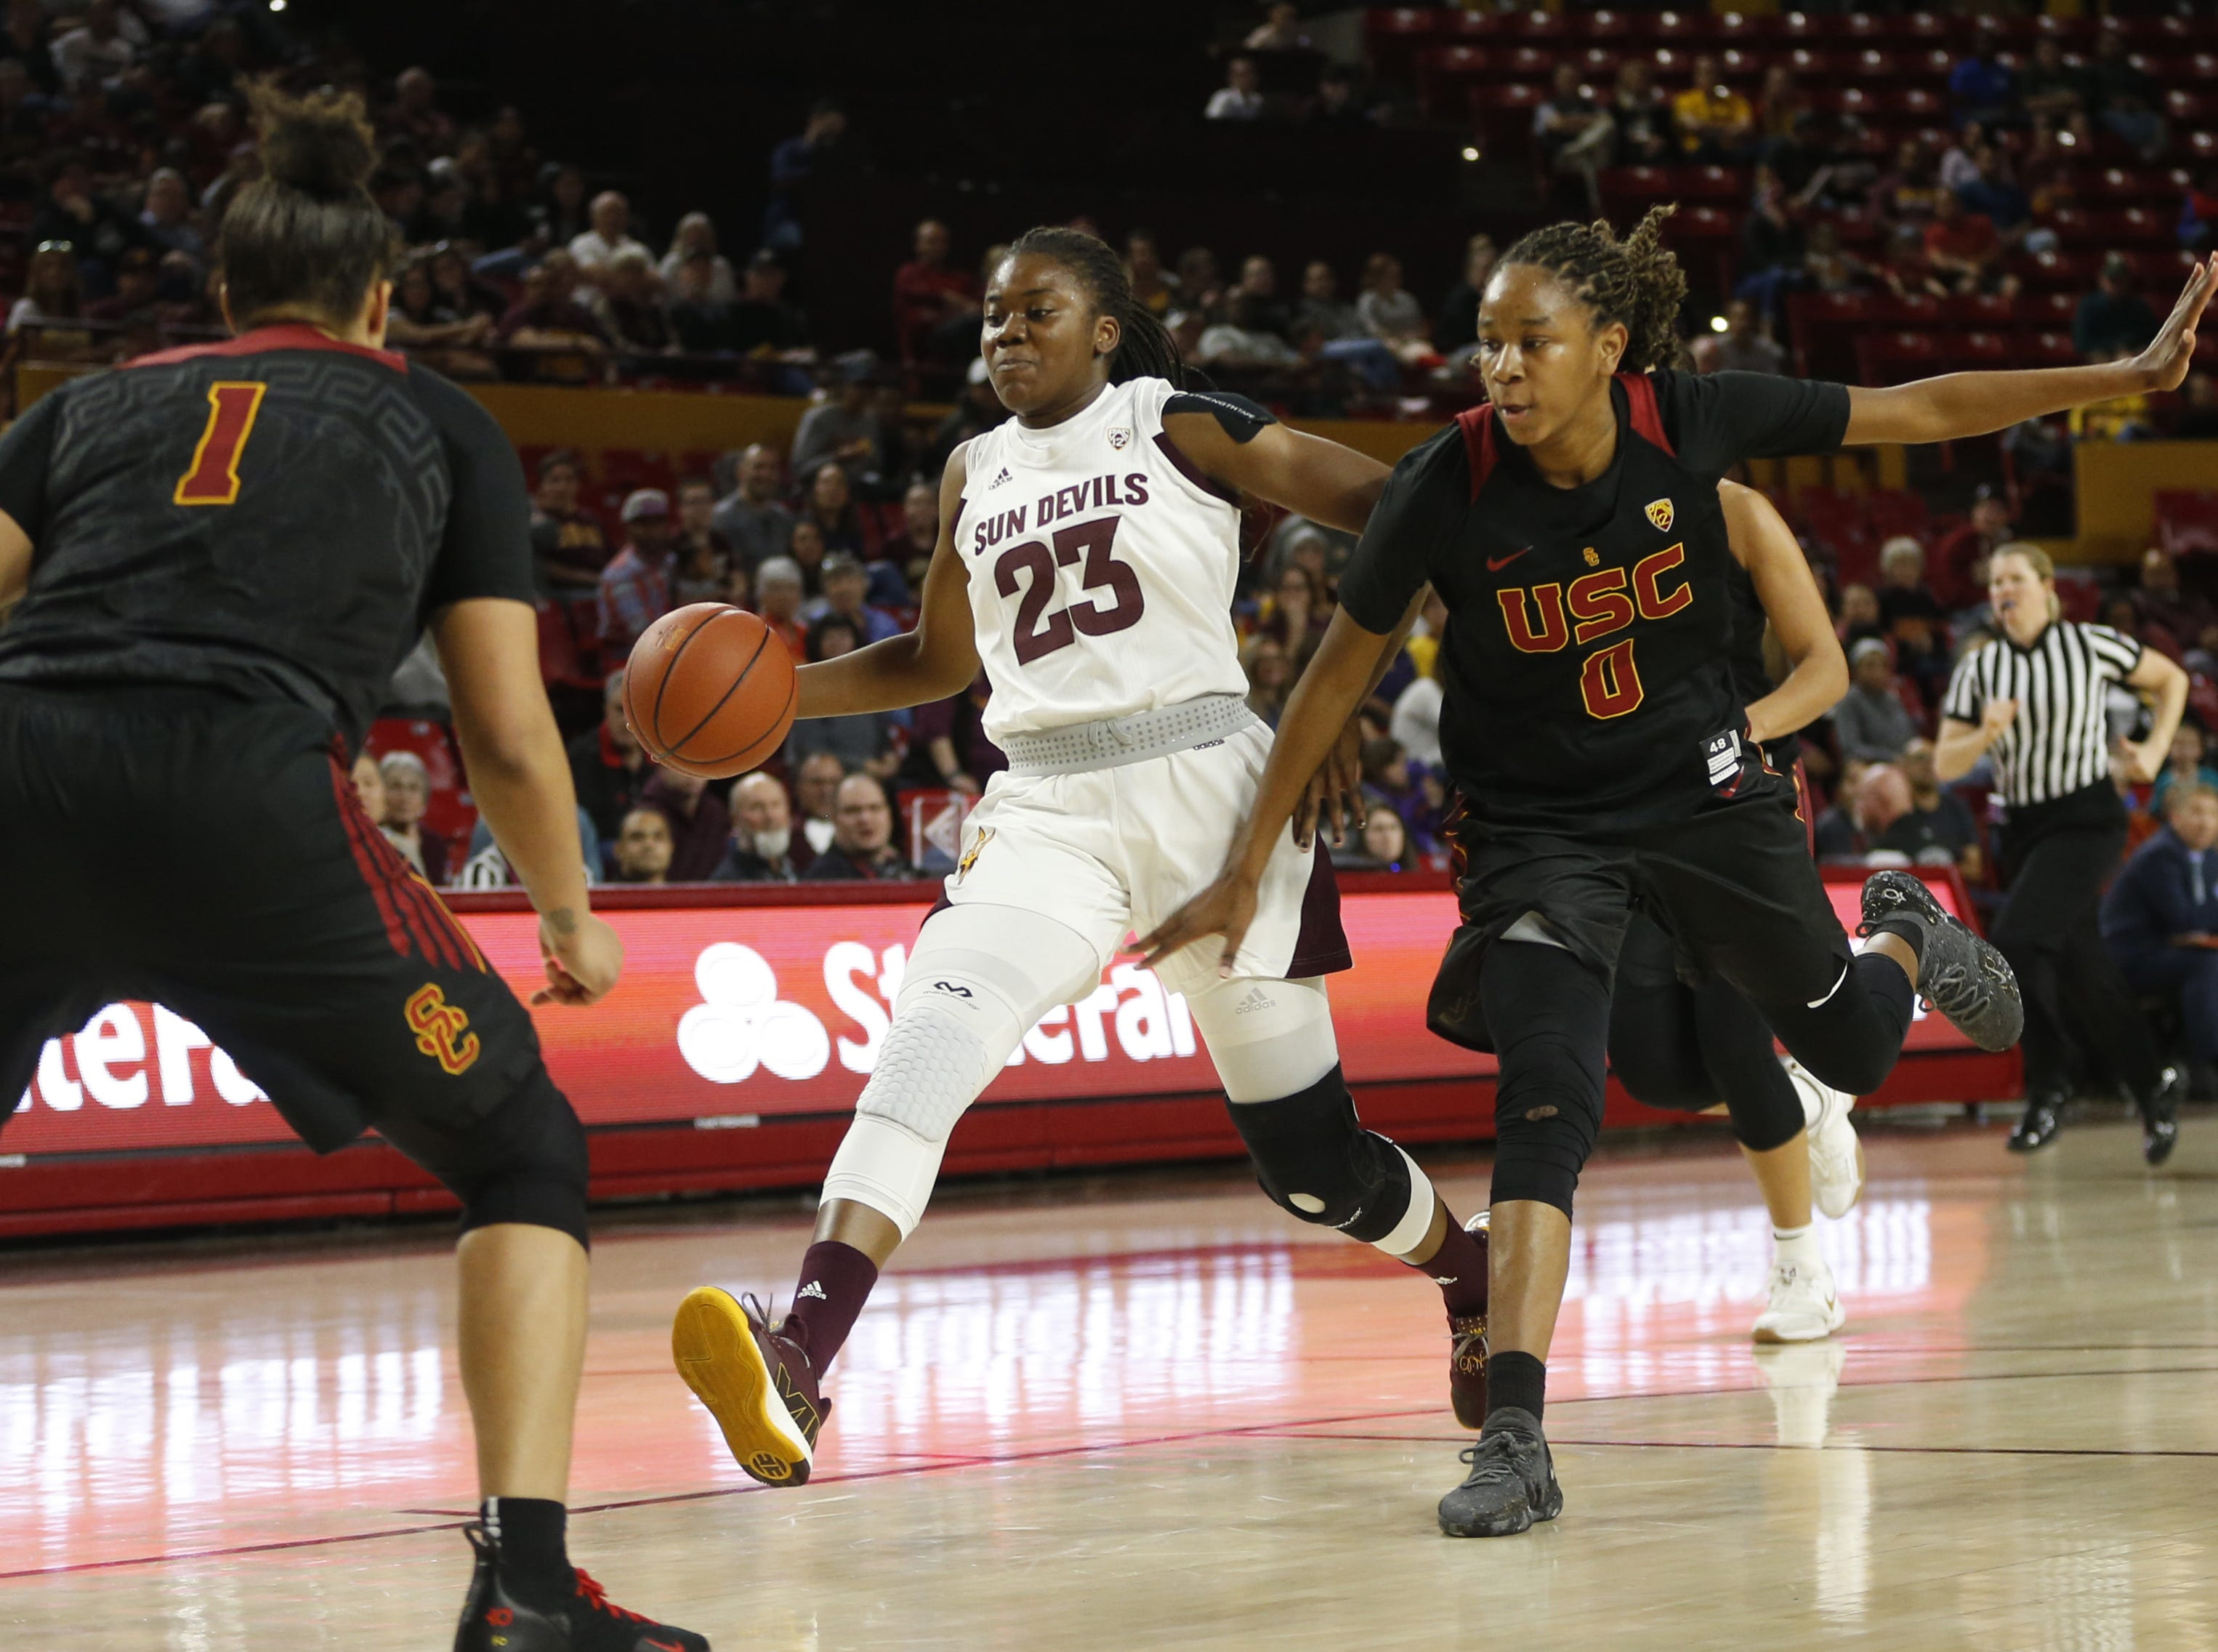 ASU's Iris Mbulito (23) draws a foul from USC's Shalexxus Aaron (0) during the second half at Wells Fargo Arena in Tempe, Ariz. on January 27, 2019.